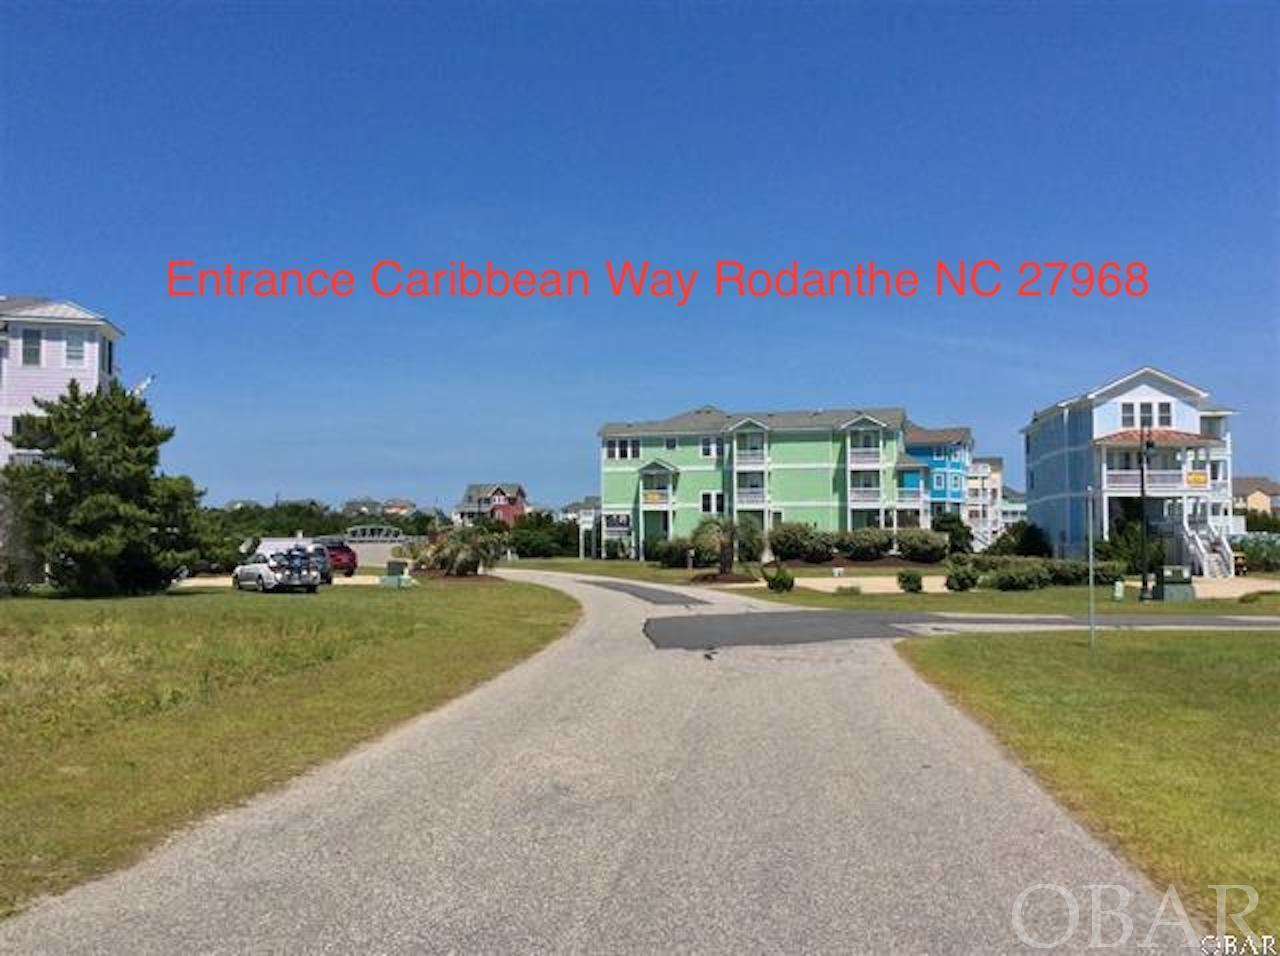 24245 Atlantic Drive, Rodanthe, NC 27968, 6 Bedrooms Bedrooms, ,6 BathroomsBathrooms,Residential,For sale,Atlantic Drive,101053